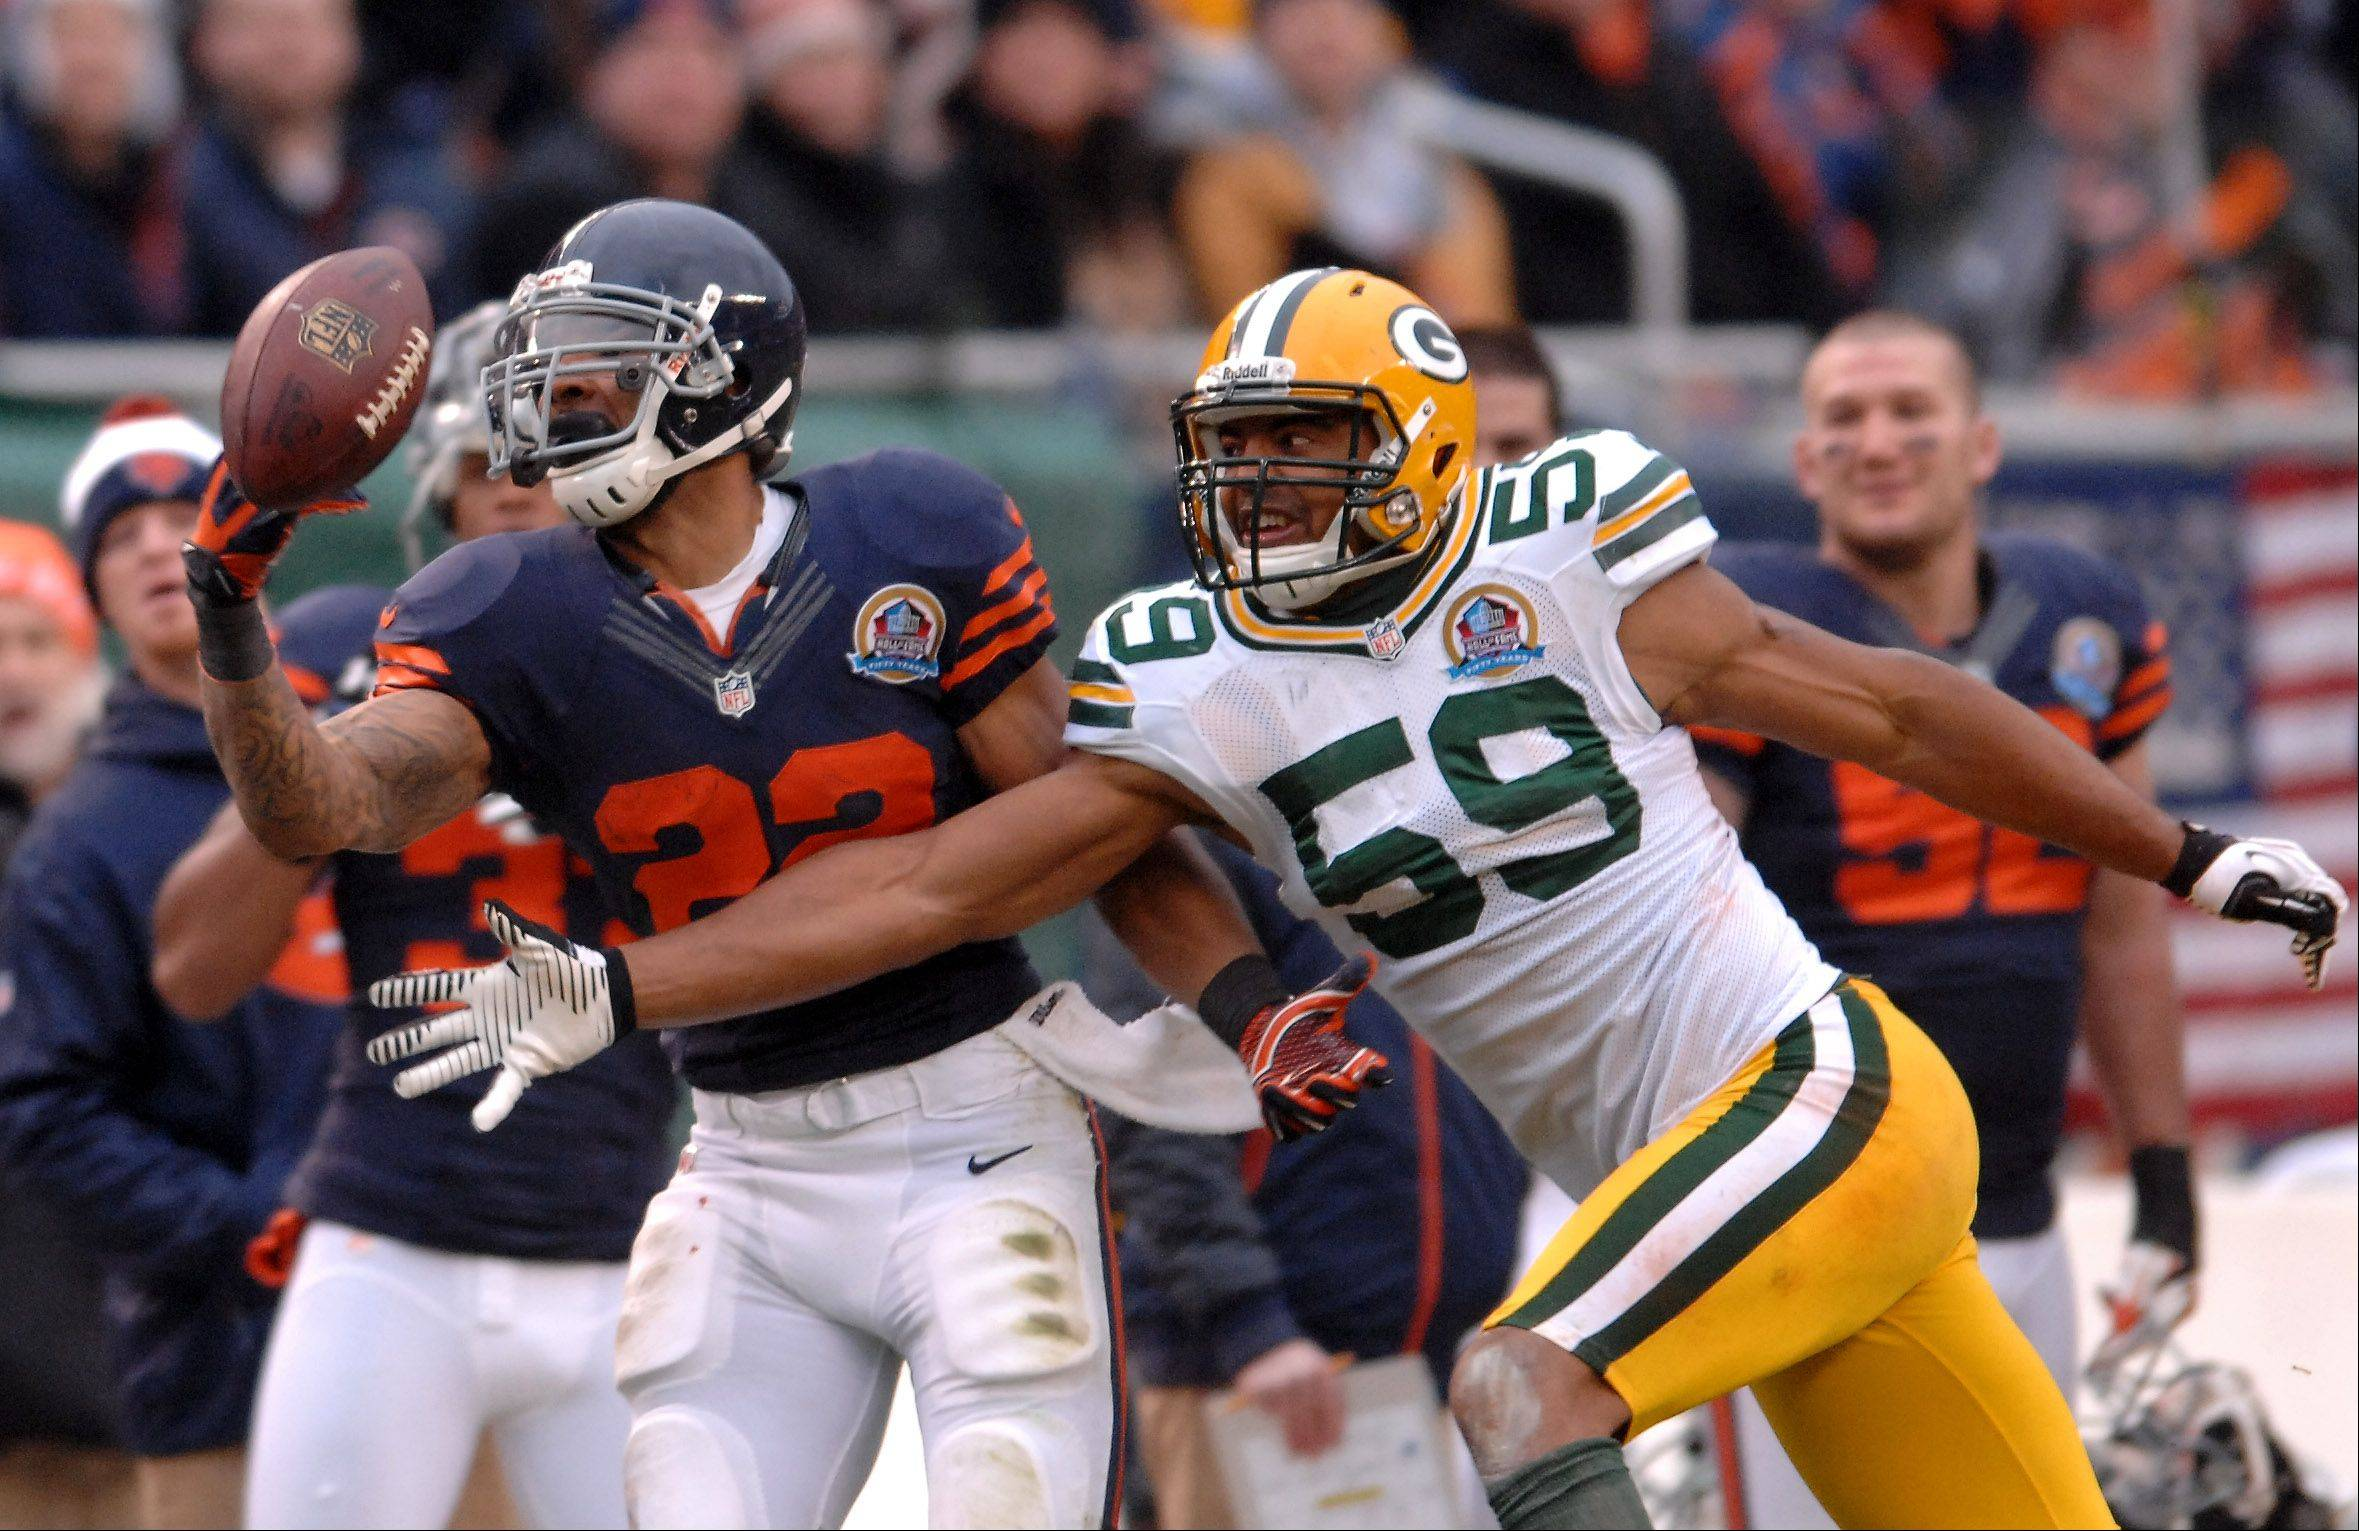 Bears running back Matt Forte (22) can't come up with a catch as Green Bay Packers inside linebacker Brad Jones (59) defends during Sunday's game at Soldier Field in Chicago.